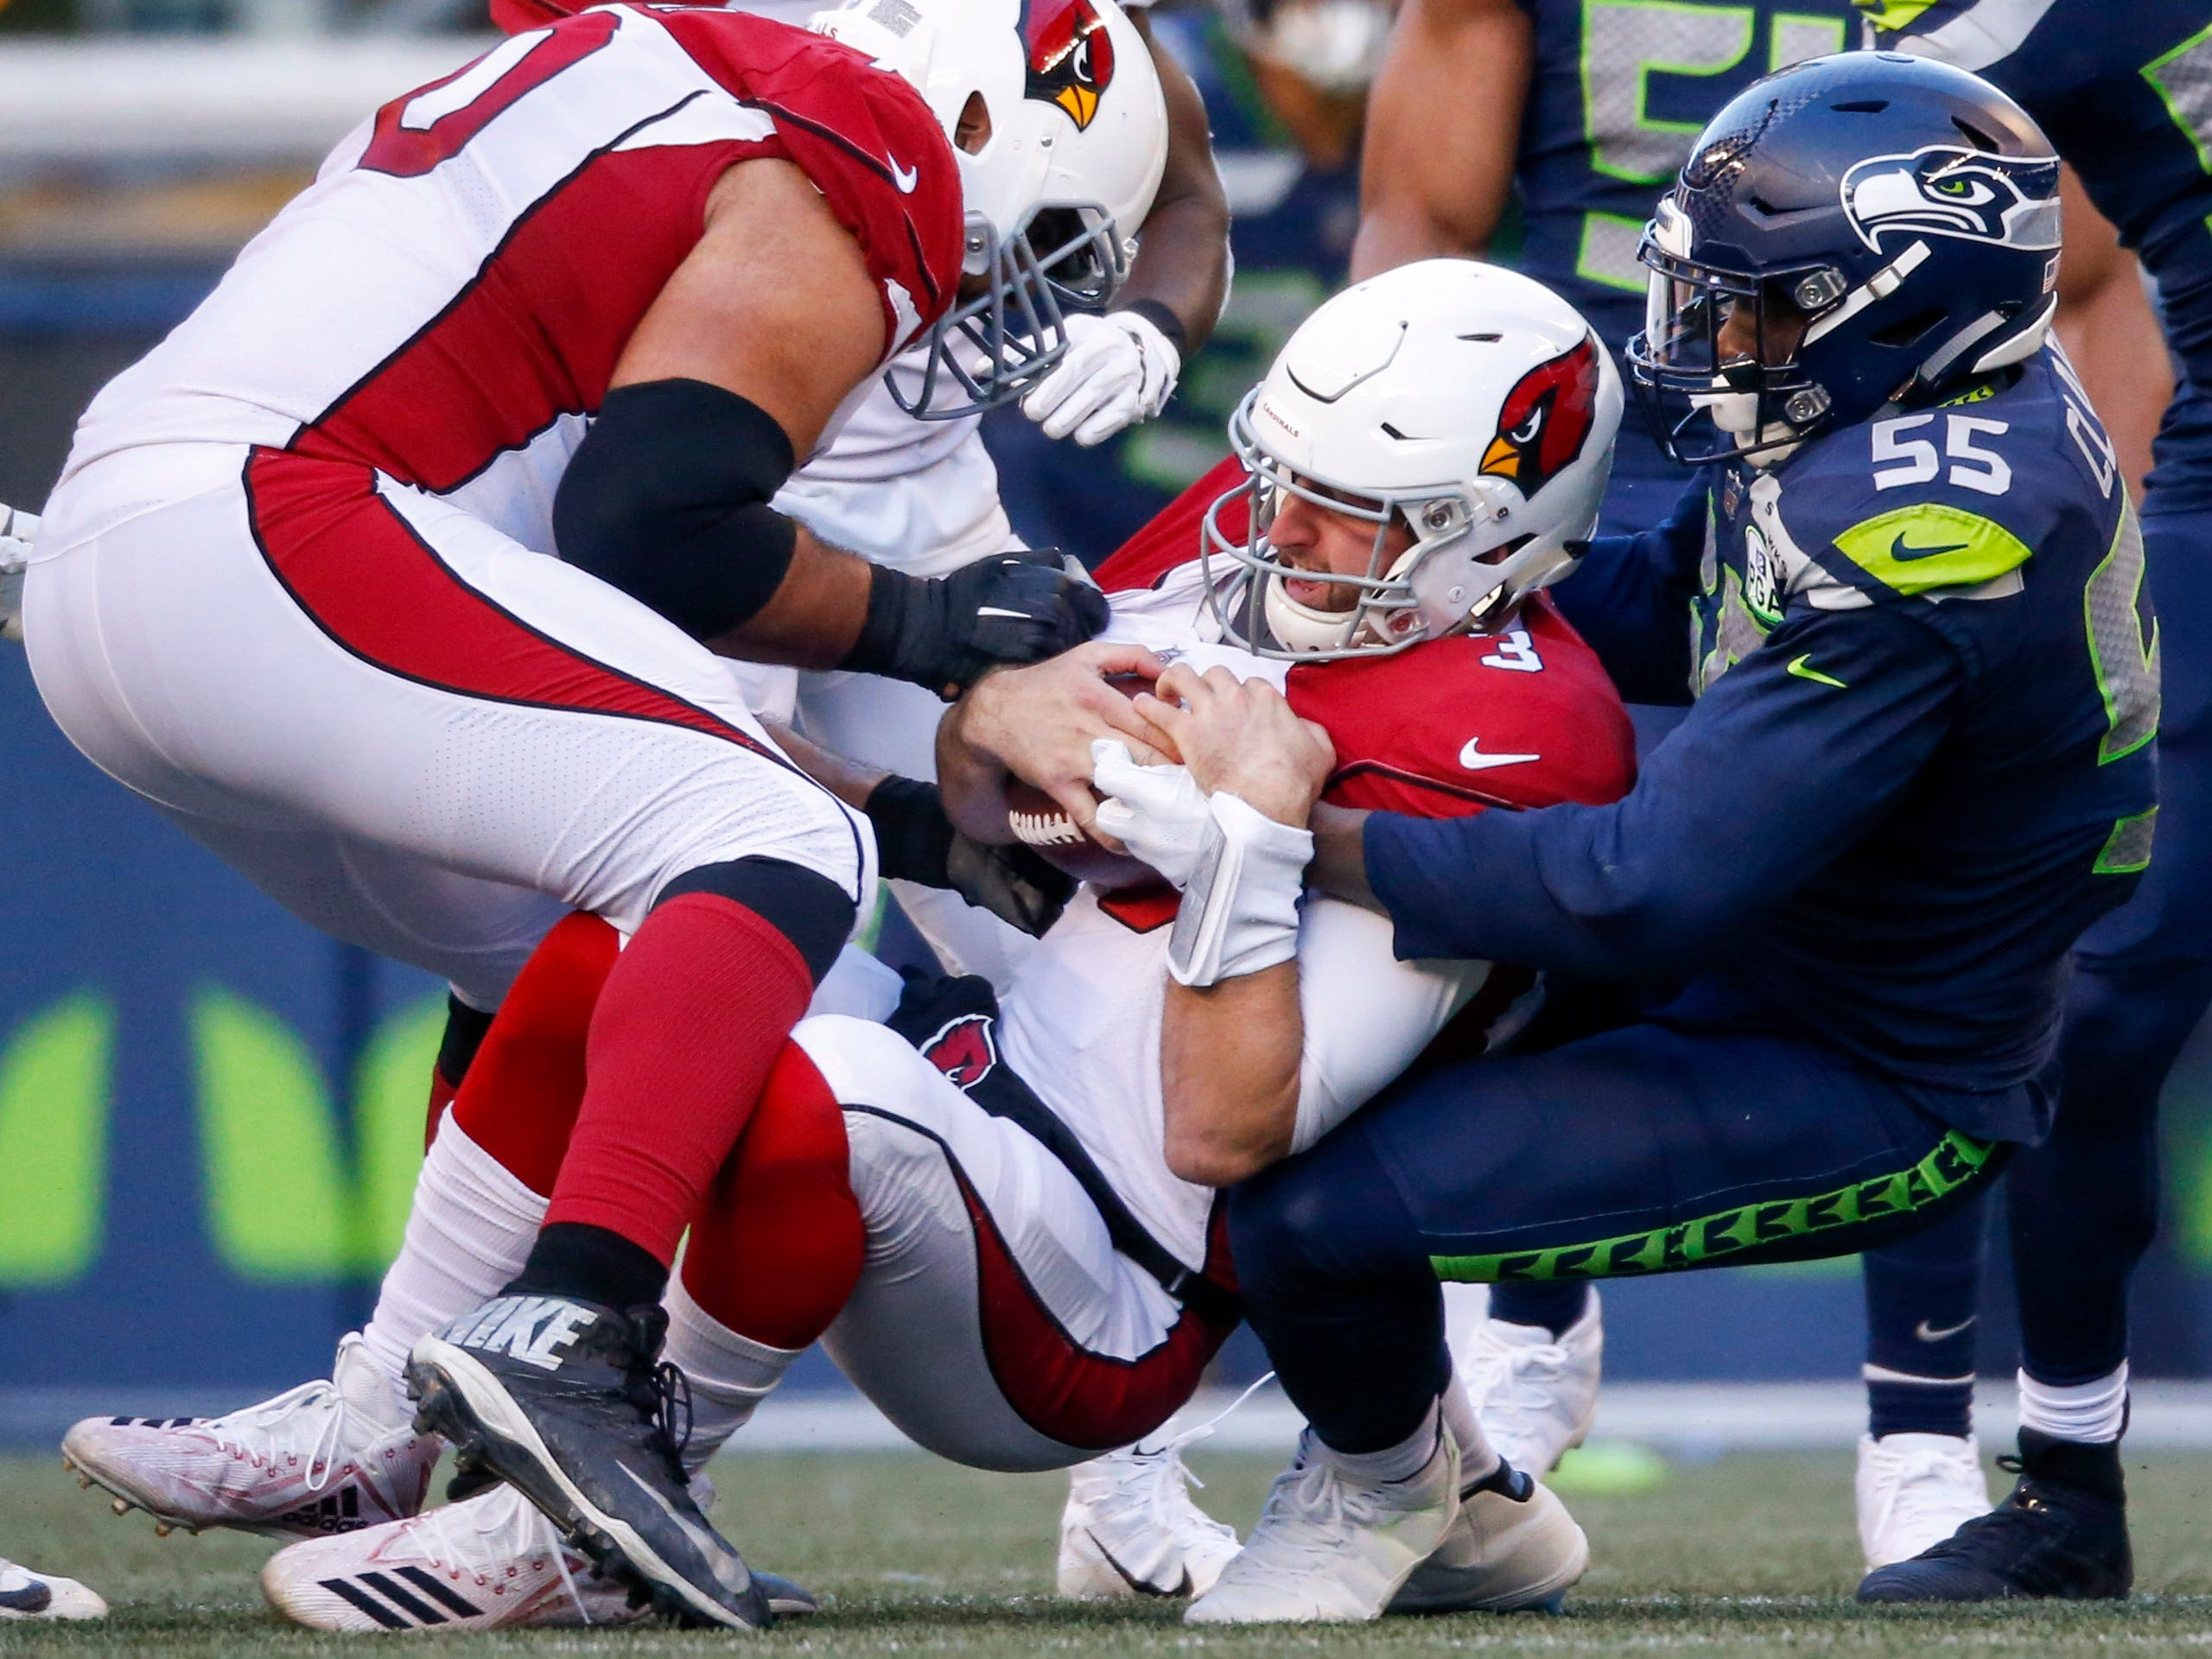 Dec 30, 2018; Seattle, WA, USA; Seattle Seahawks defensive end Frank Clark (55) sacks Arizona Cardinals quarterback Josh Rosen (3) during the second quarter at CenturyLink Field. Mandatory Credit: Joe Nicholson-USA TODAY Sports